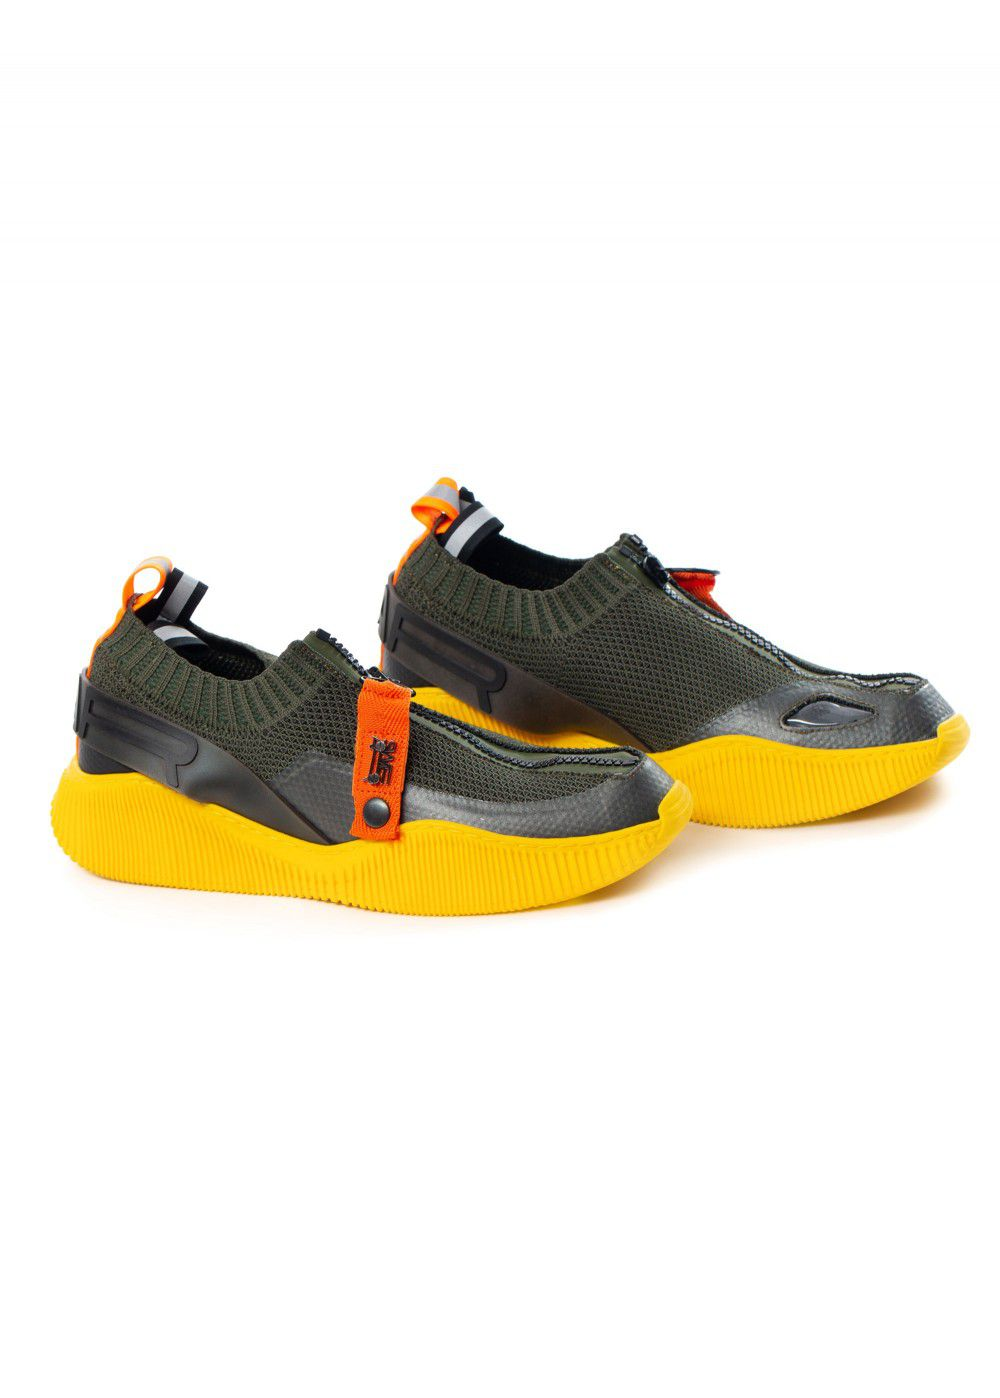 Swear London Crosby Knit Sneakers Black/Yellow